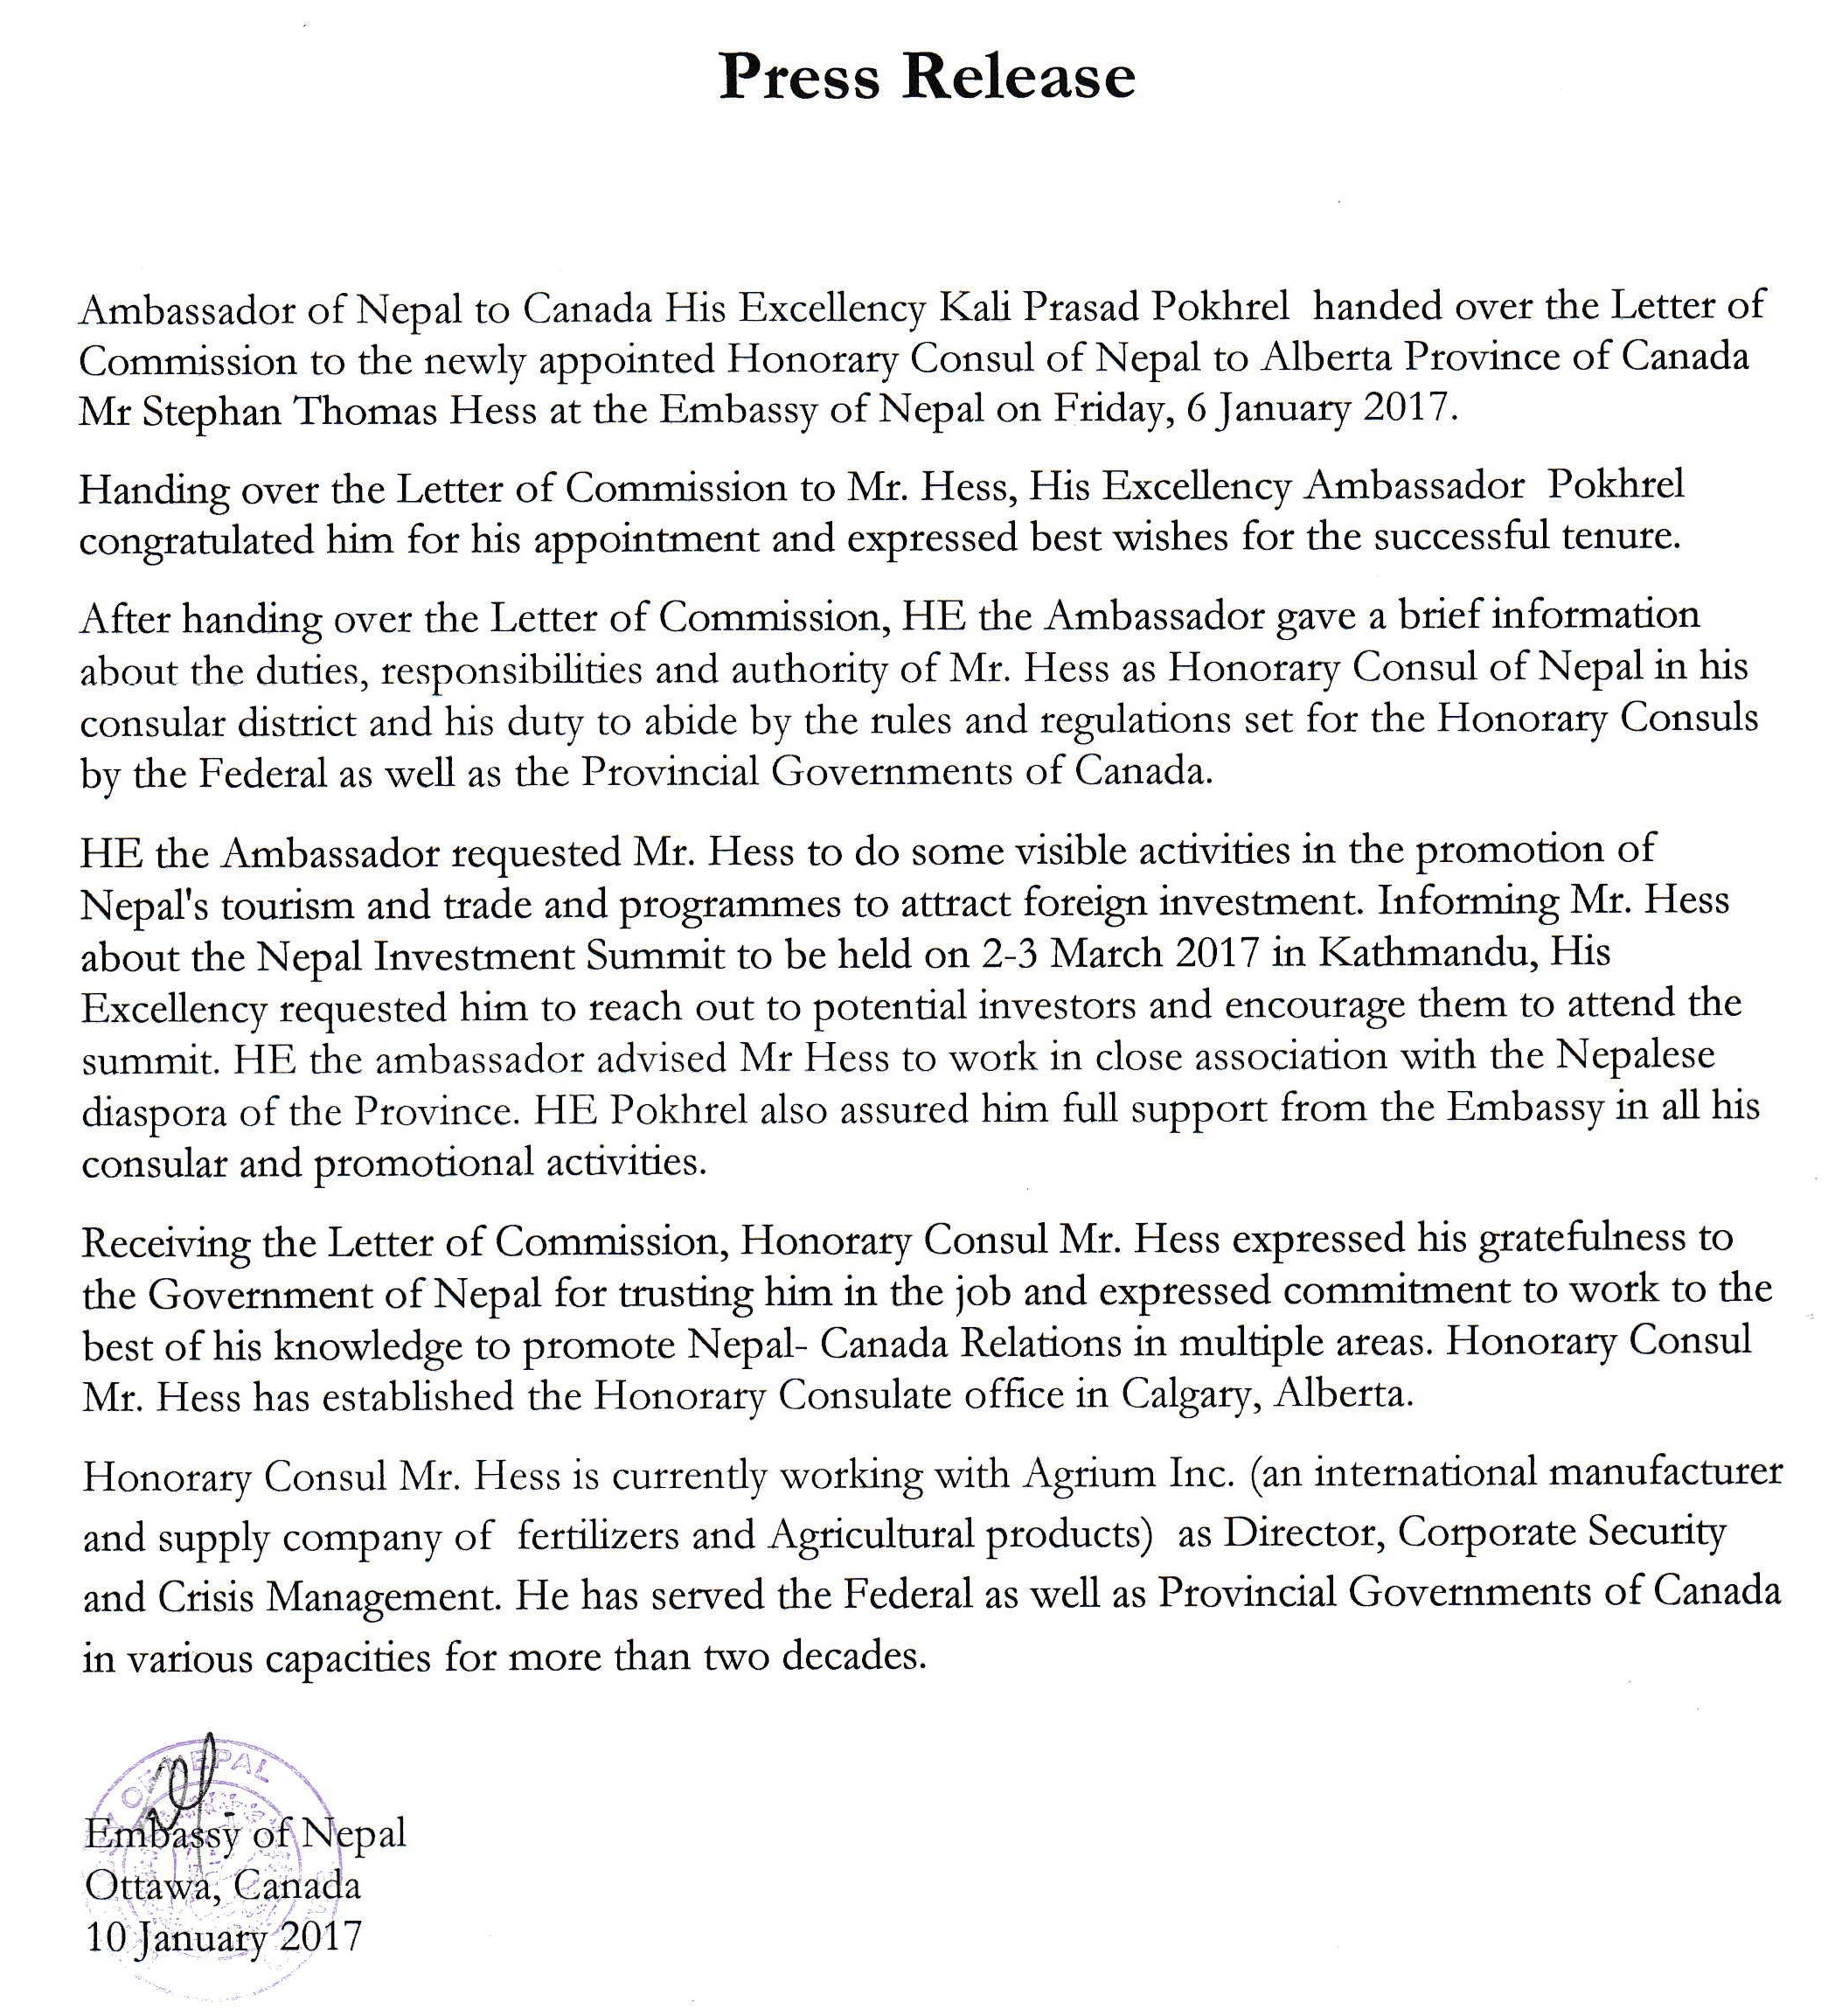 press release issued by the Embassy of Nepal, Ottawa